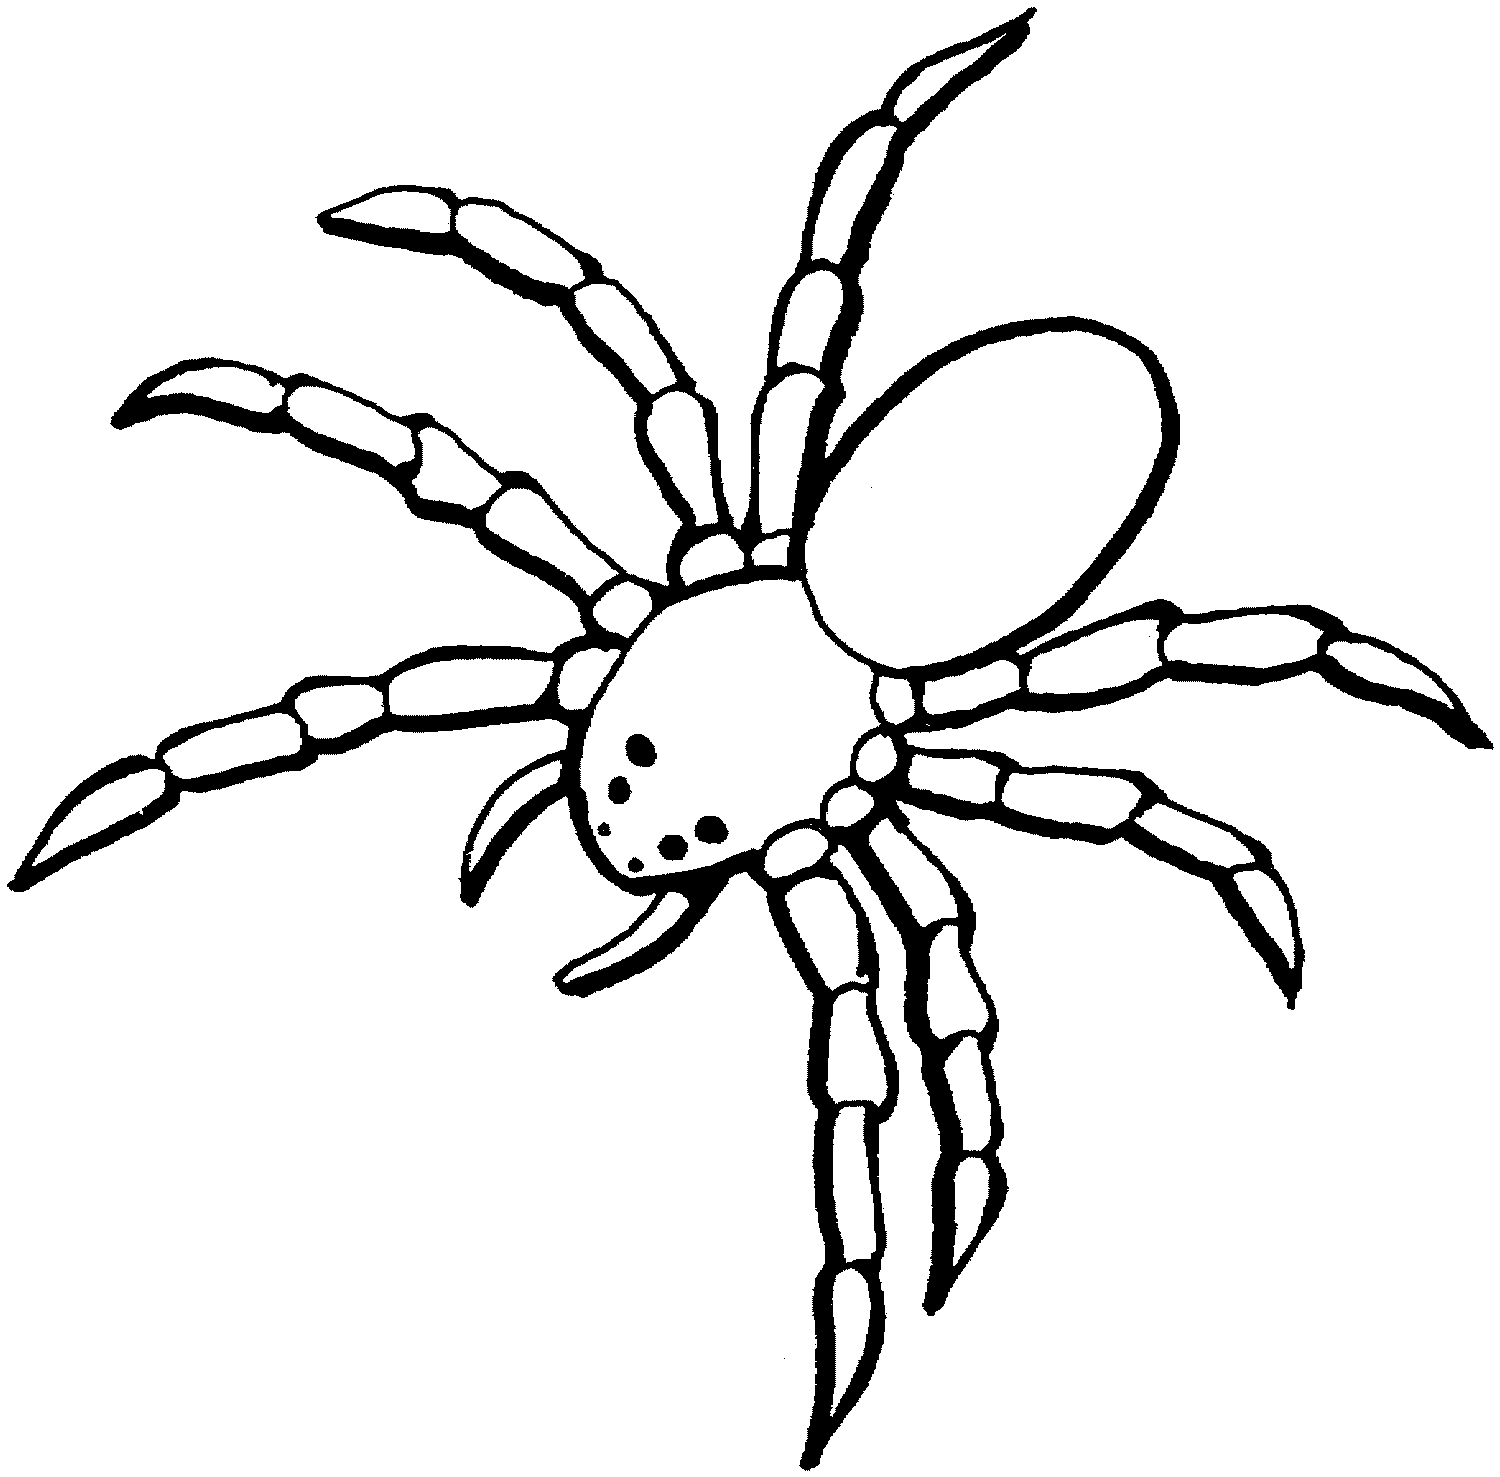 Spider clipart spide. New collection digital j